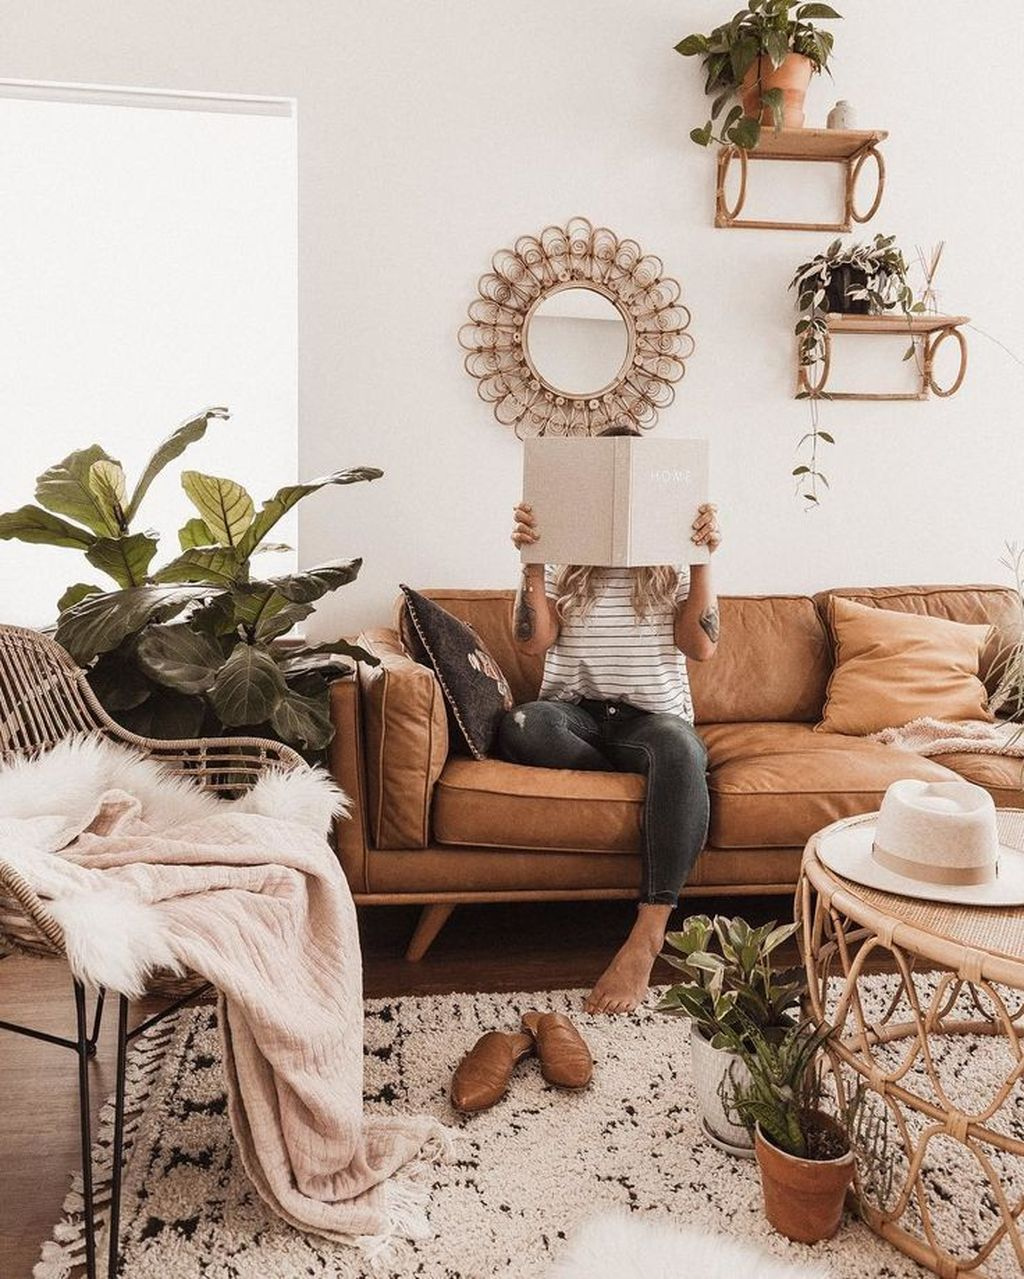 Best Summer Interior Design Ideas To Beautify Your Home 13